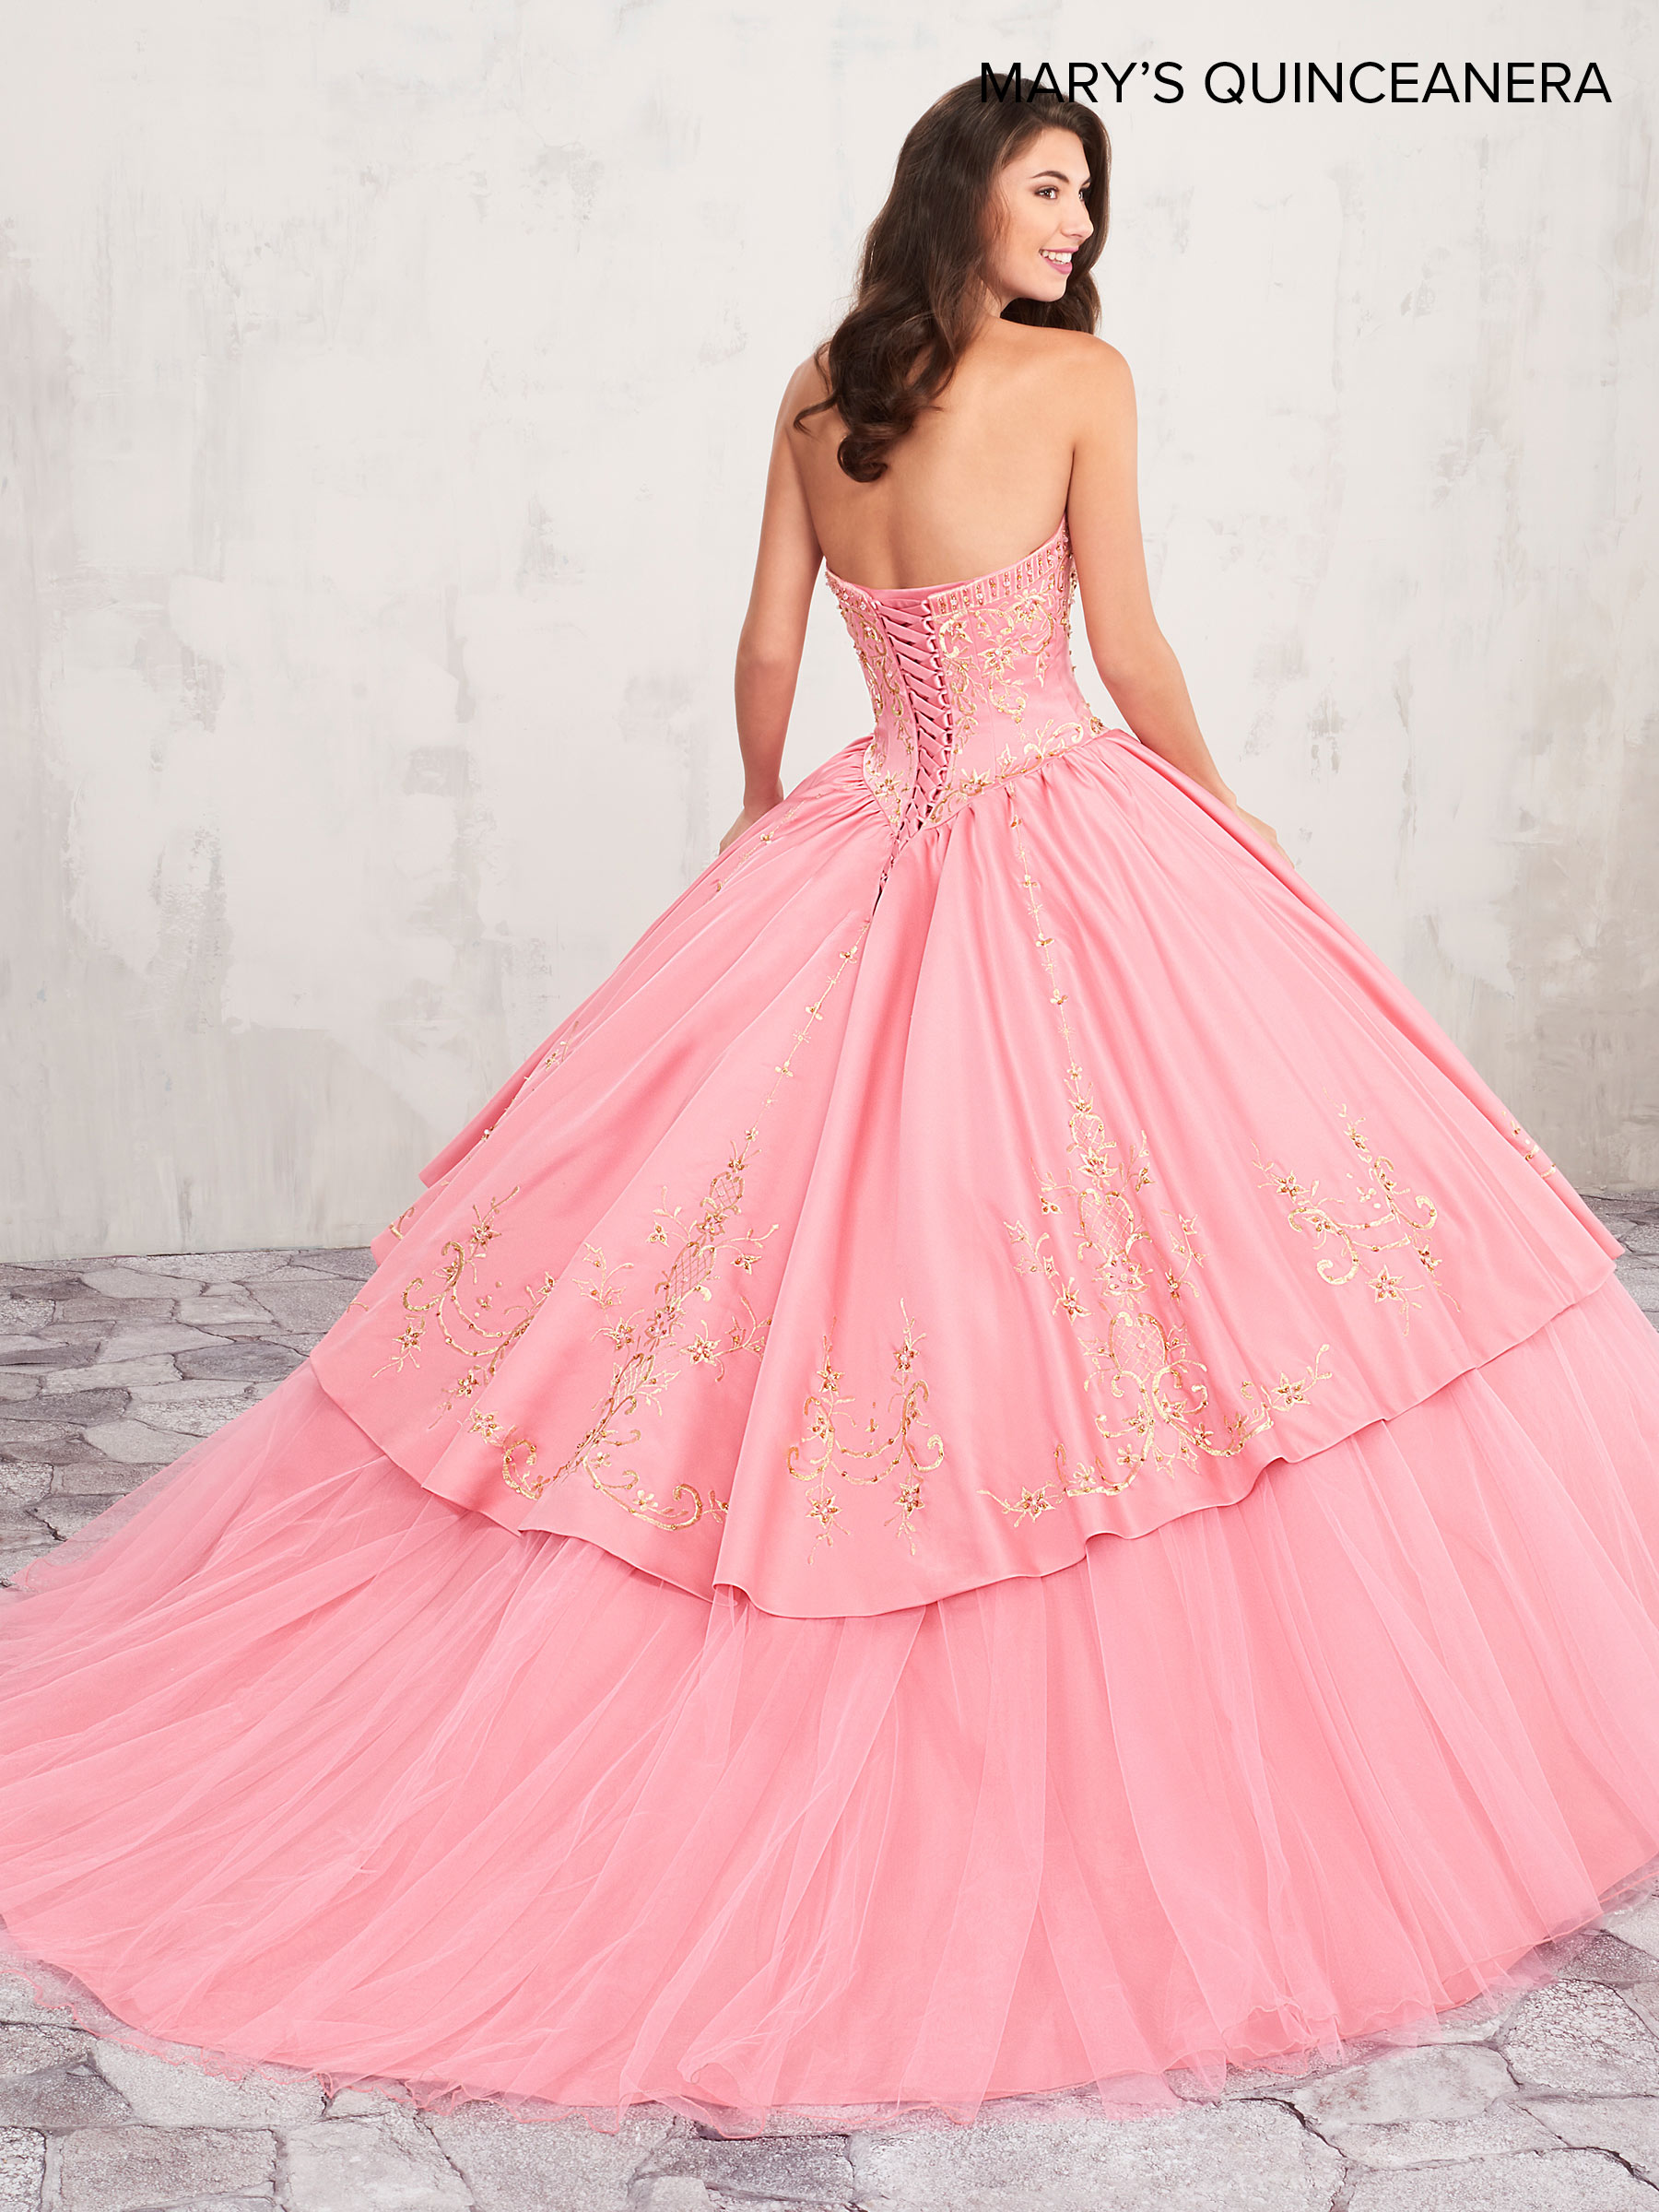 Marys Quinceanera Dresses | Mary's Quinceanera | Style - MQ2019